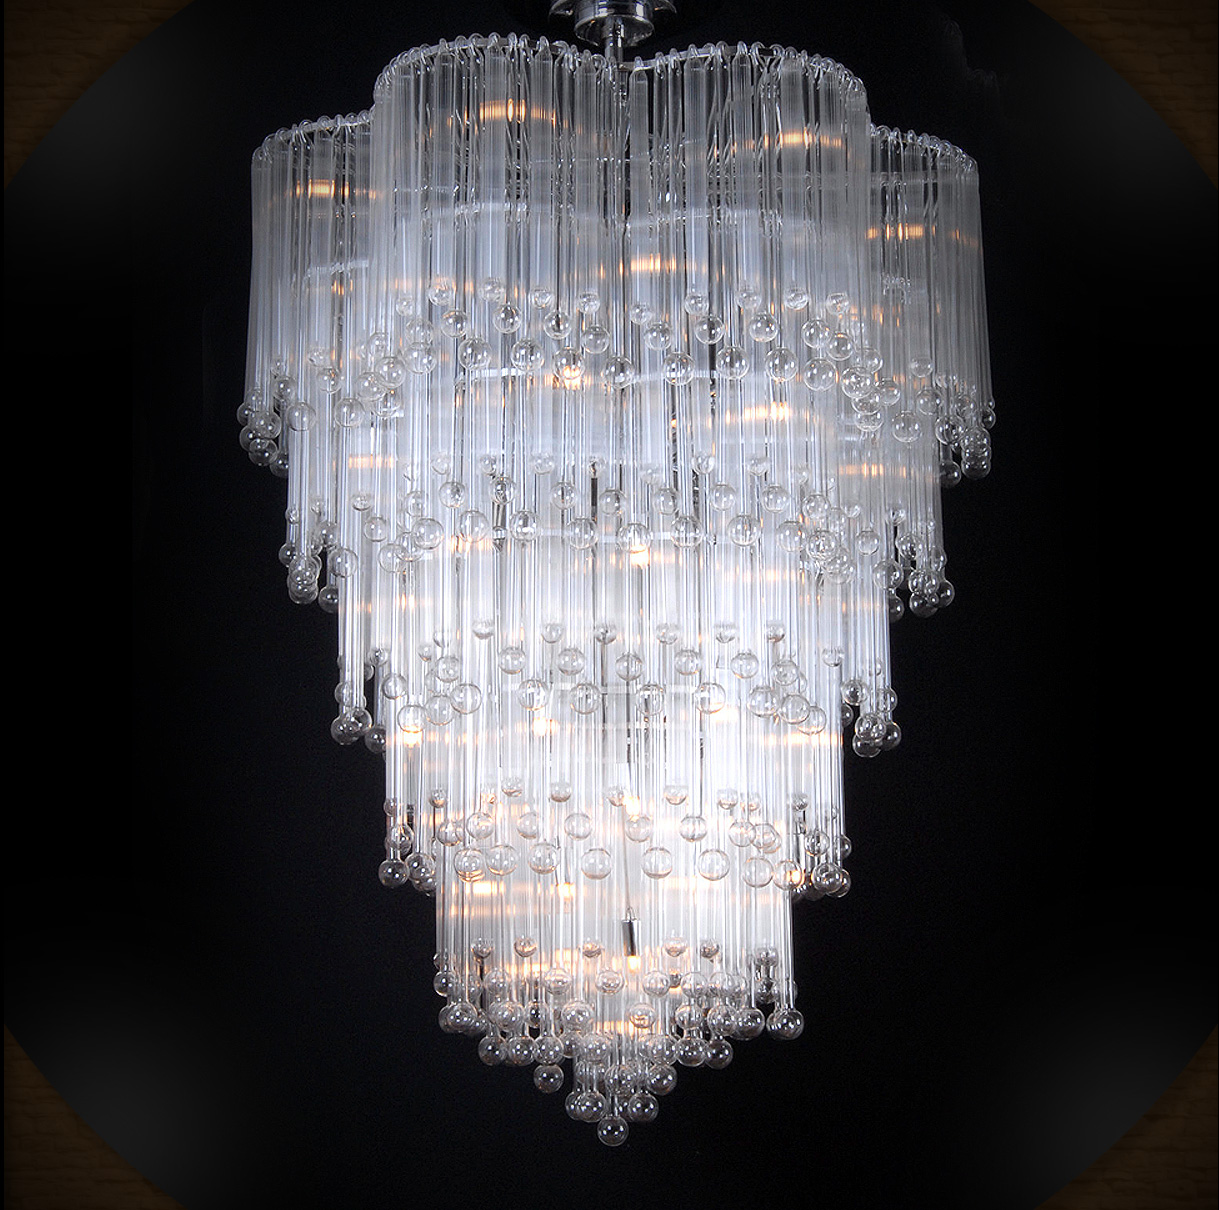 i used 2 b intimidated by this chandelier, but now we have an understanding.